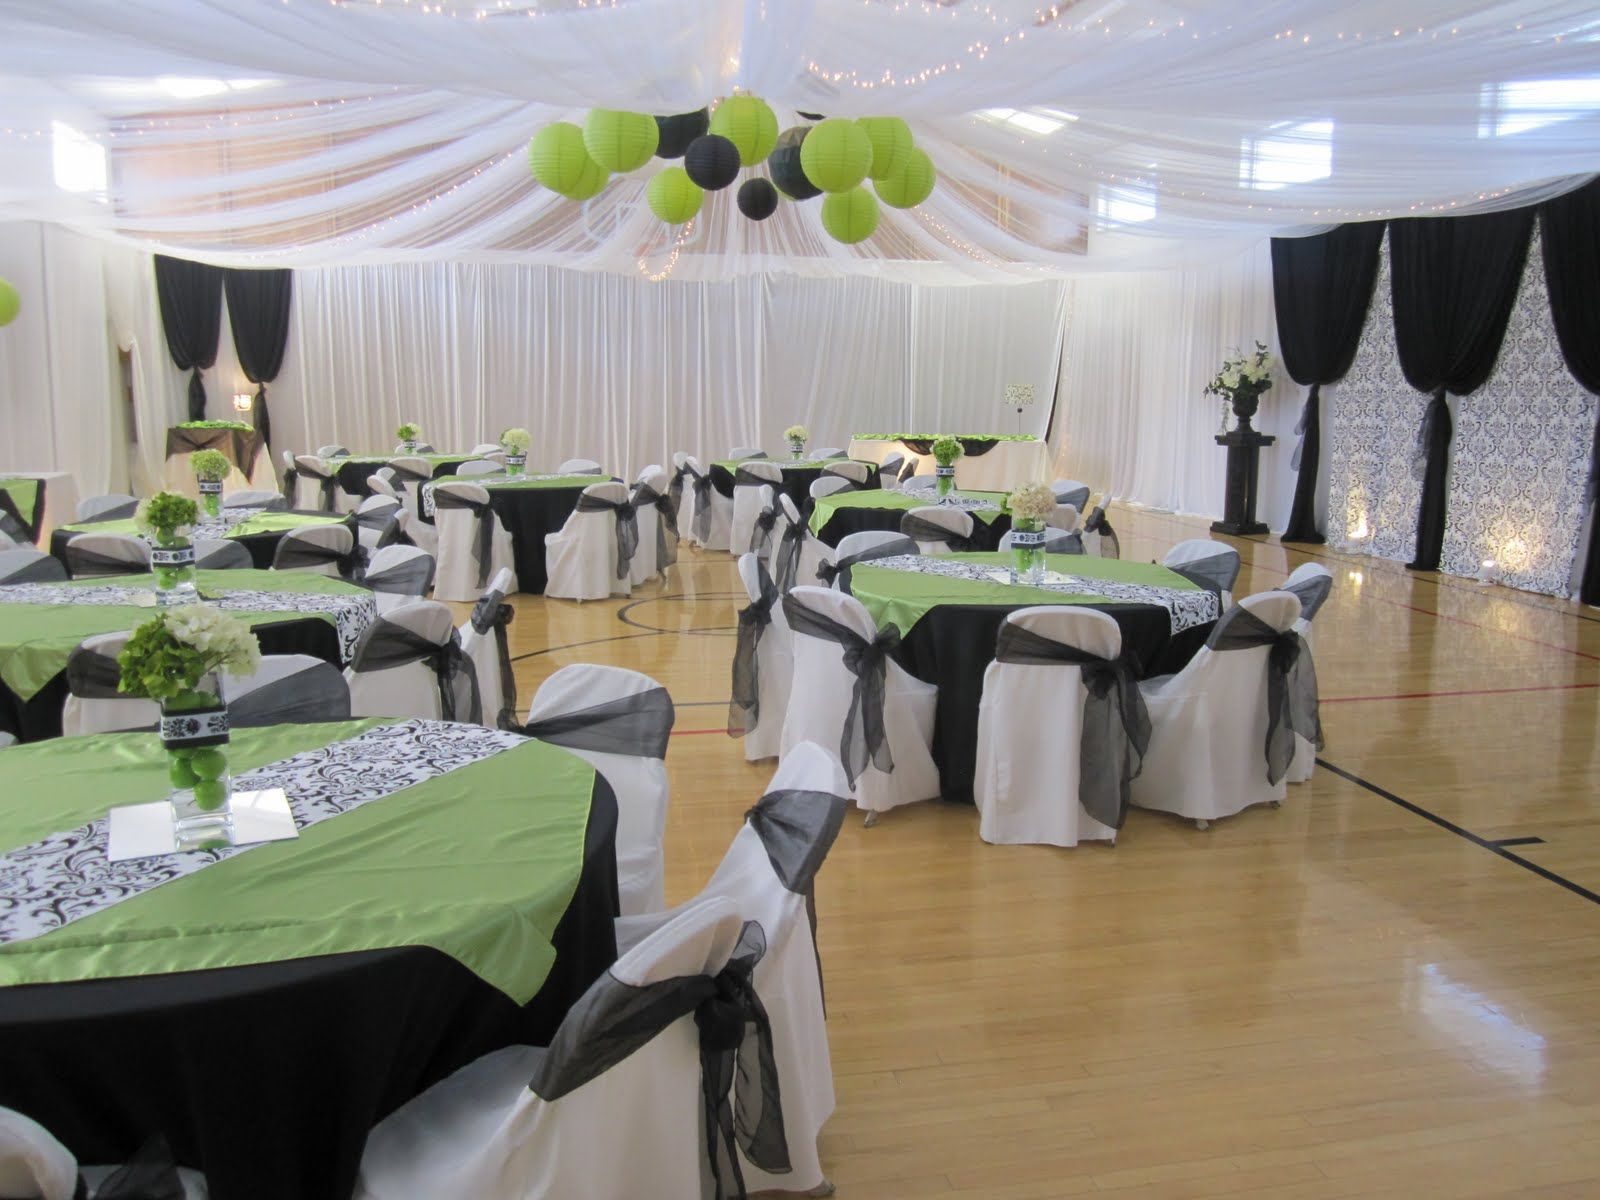 Wedding reception in a gym ideas wedding reception for Wedding reception location ideas